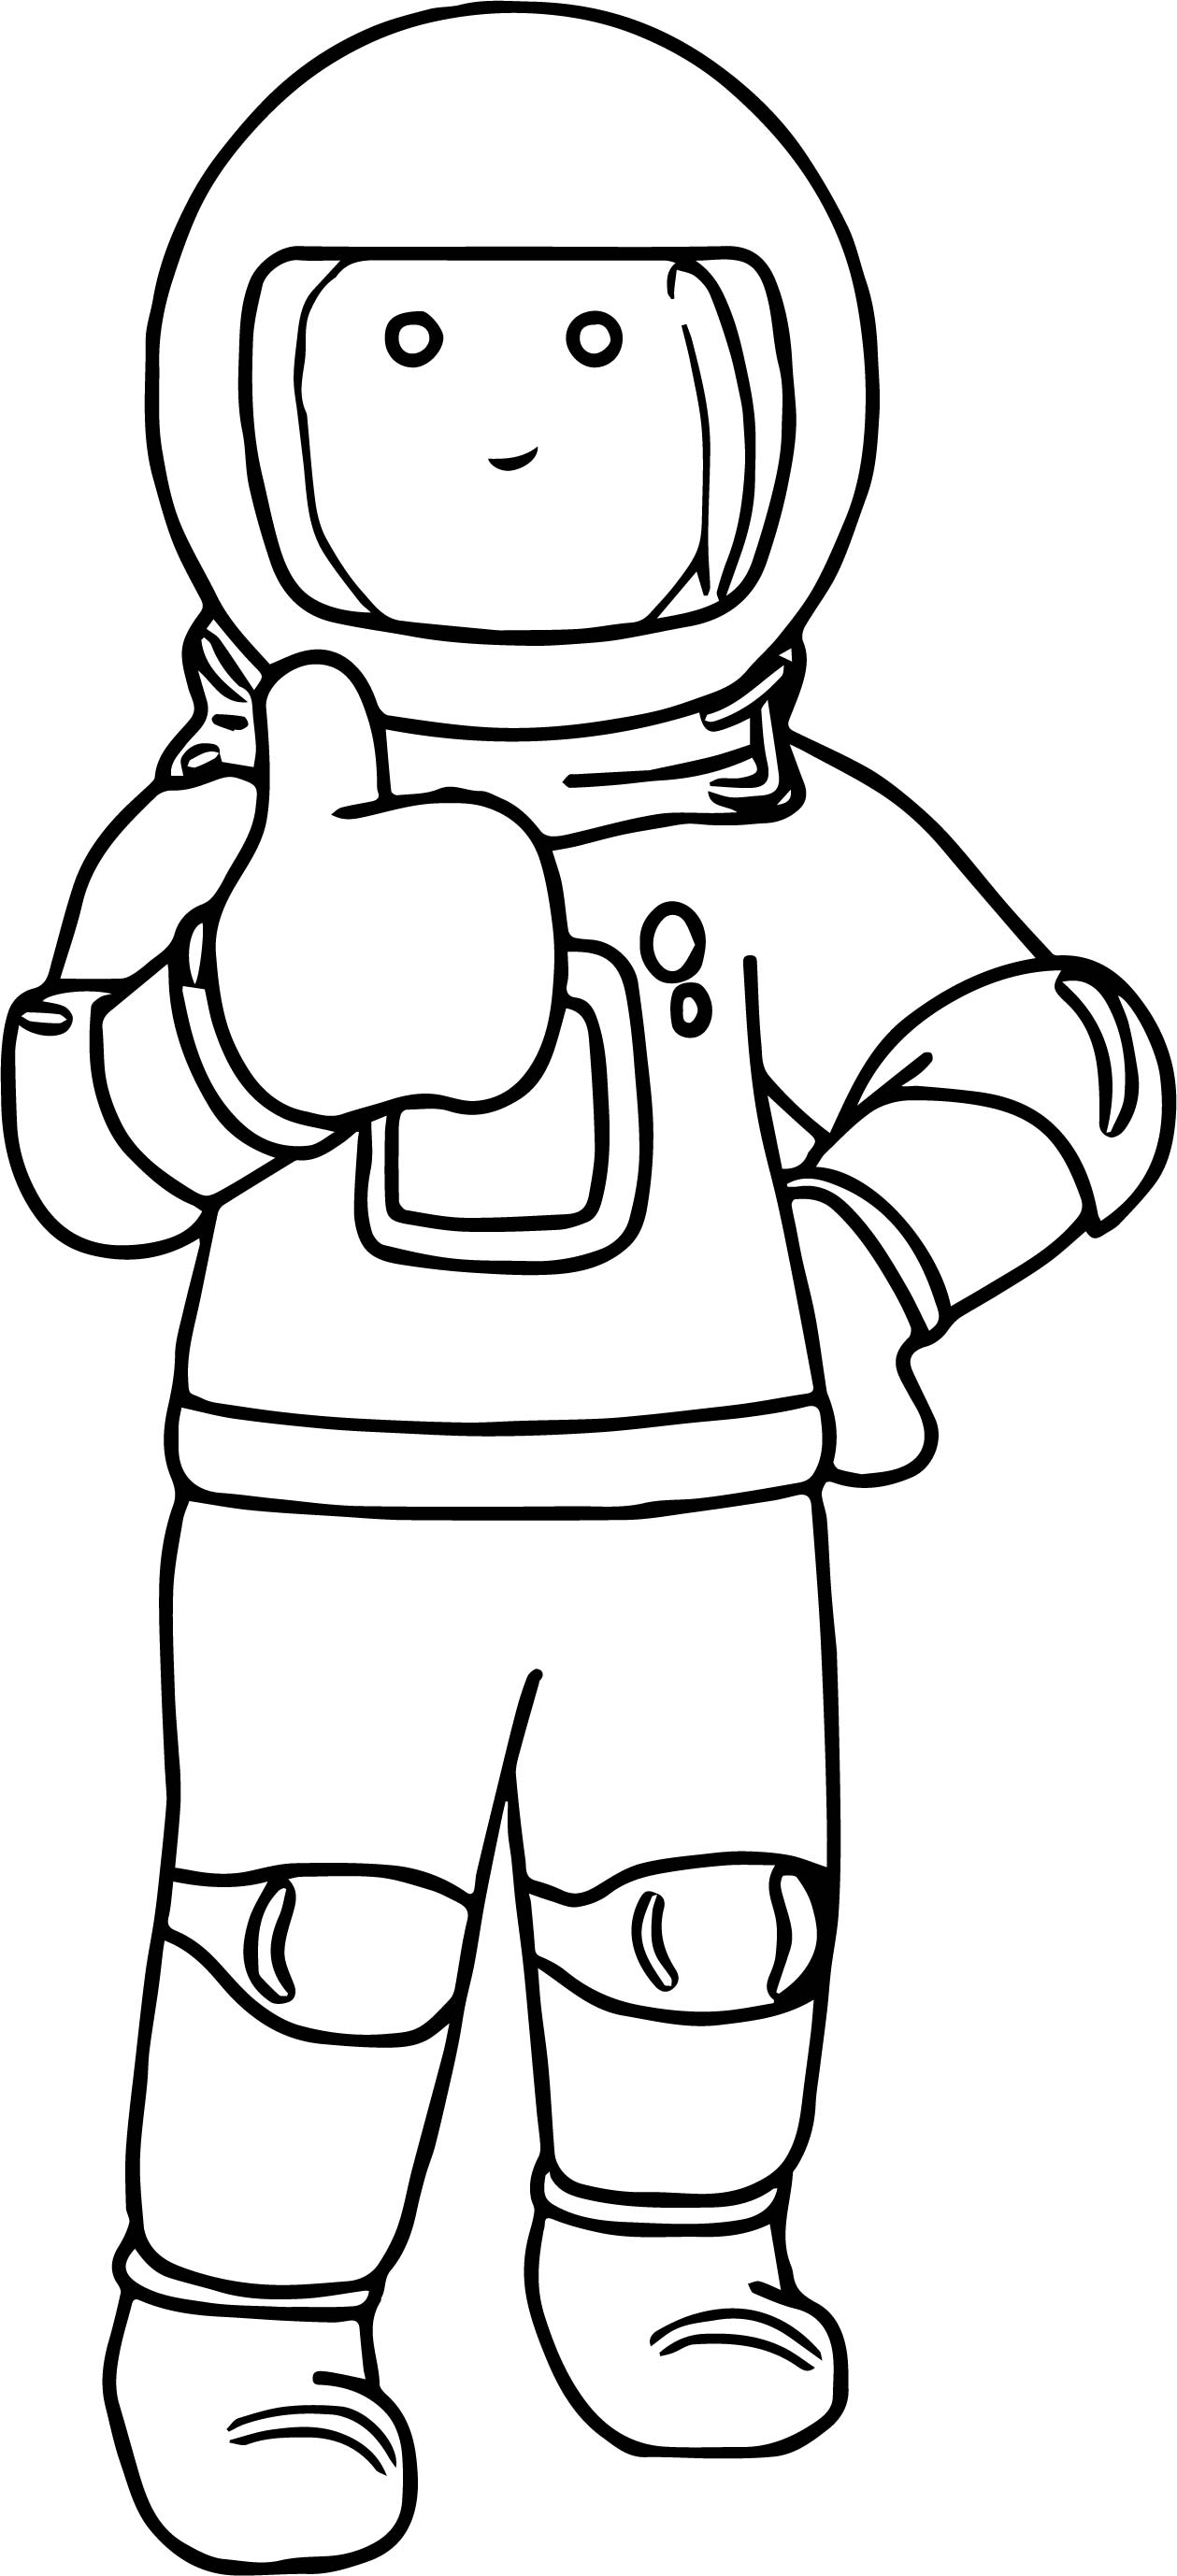 astronaut coloring pages - astronaut right coloring page